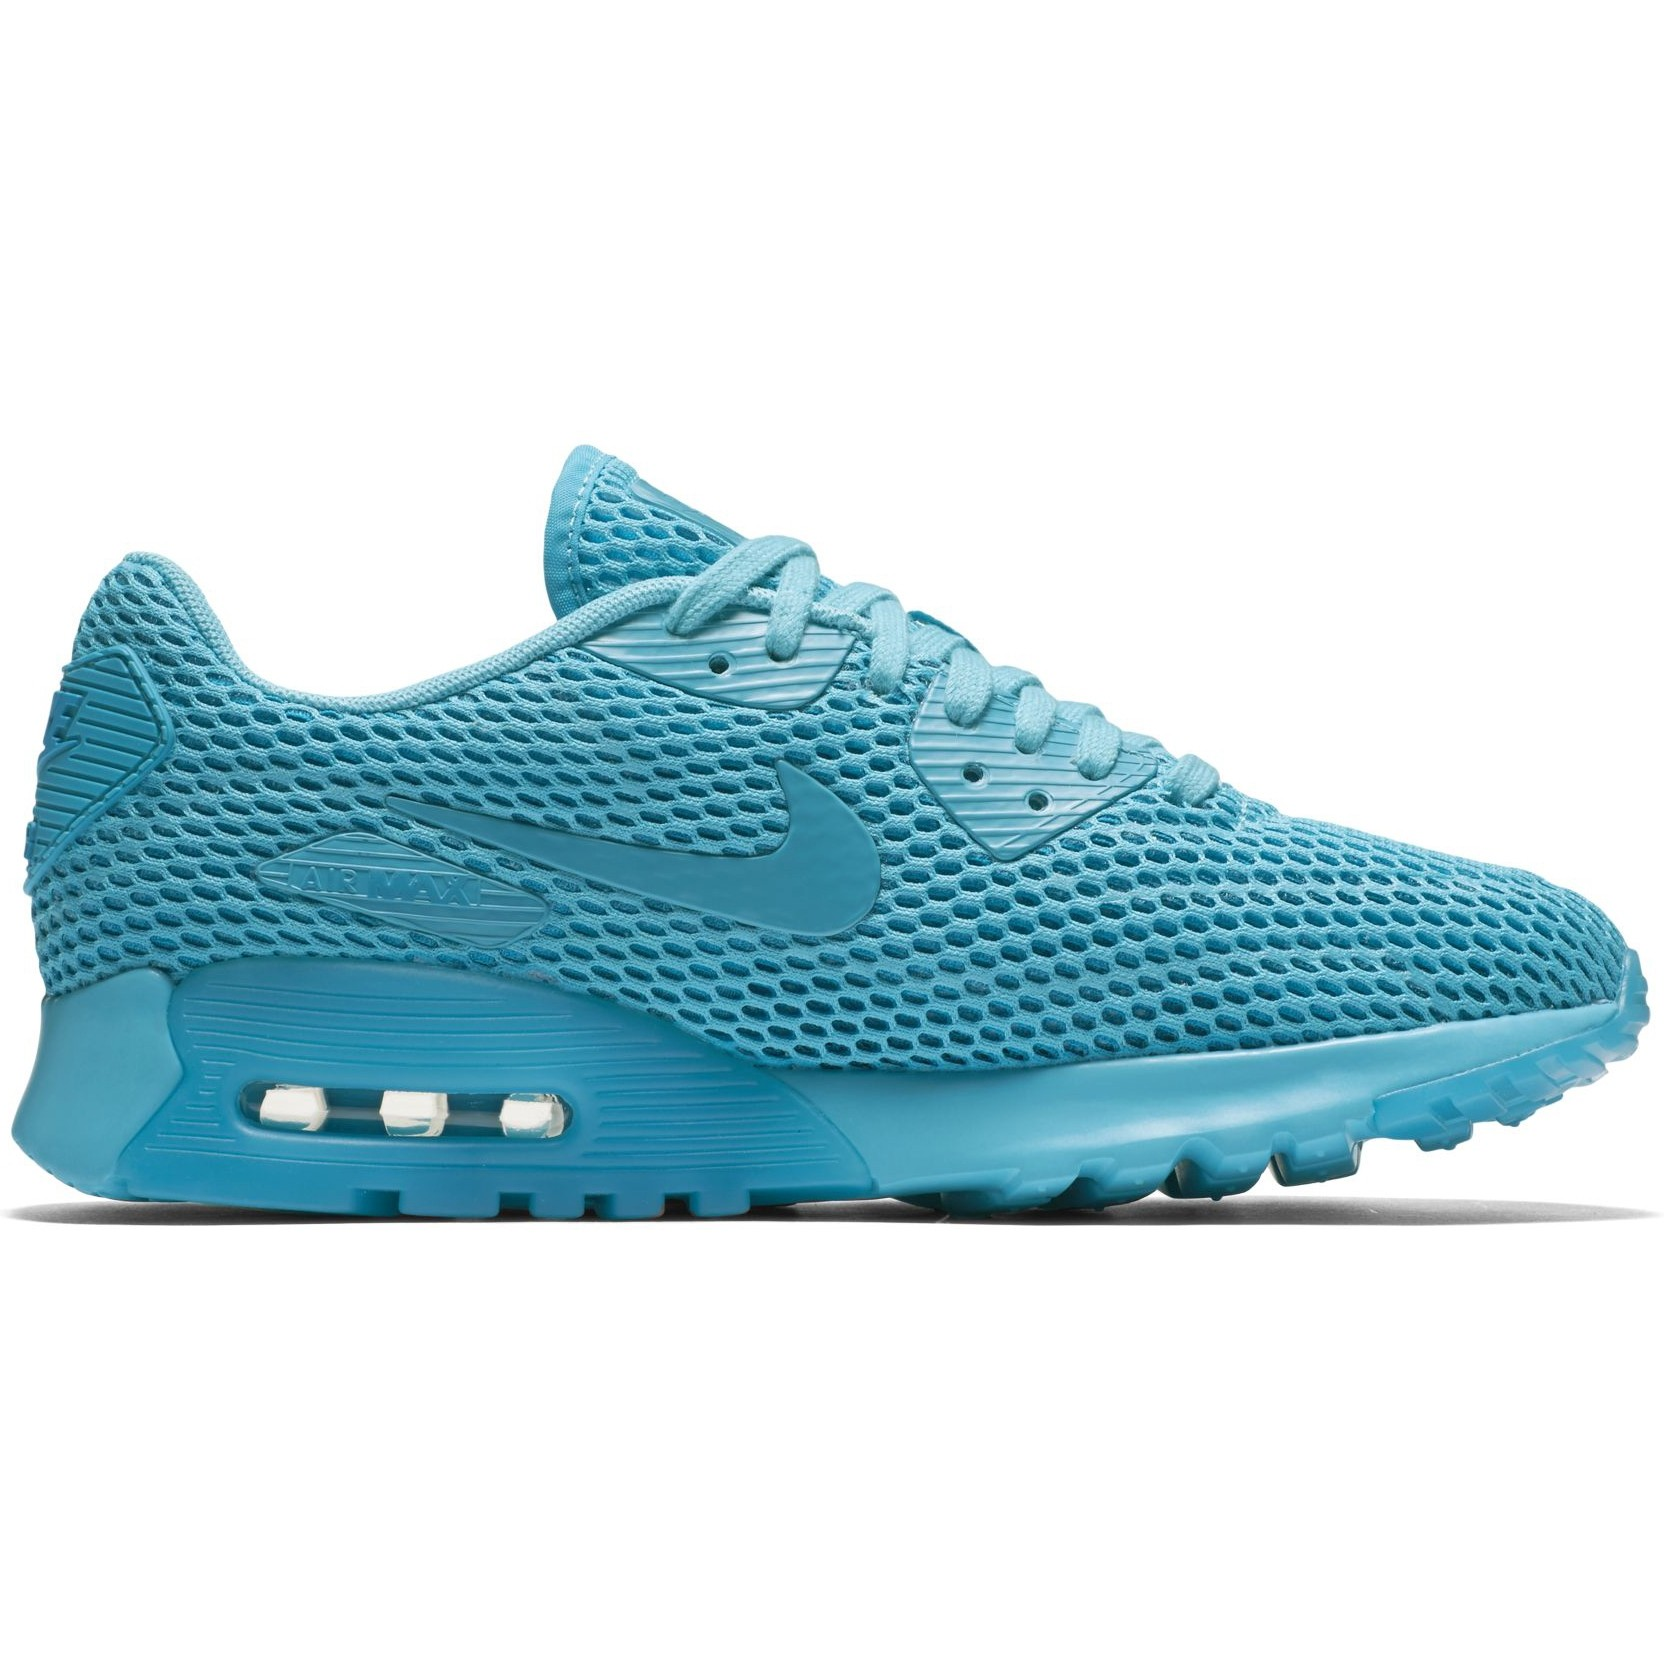 Nike Wmns Air Max 90 Ultra BR - Nike Air Max batai